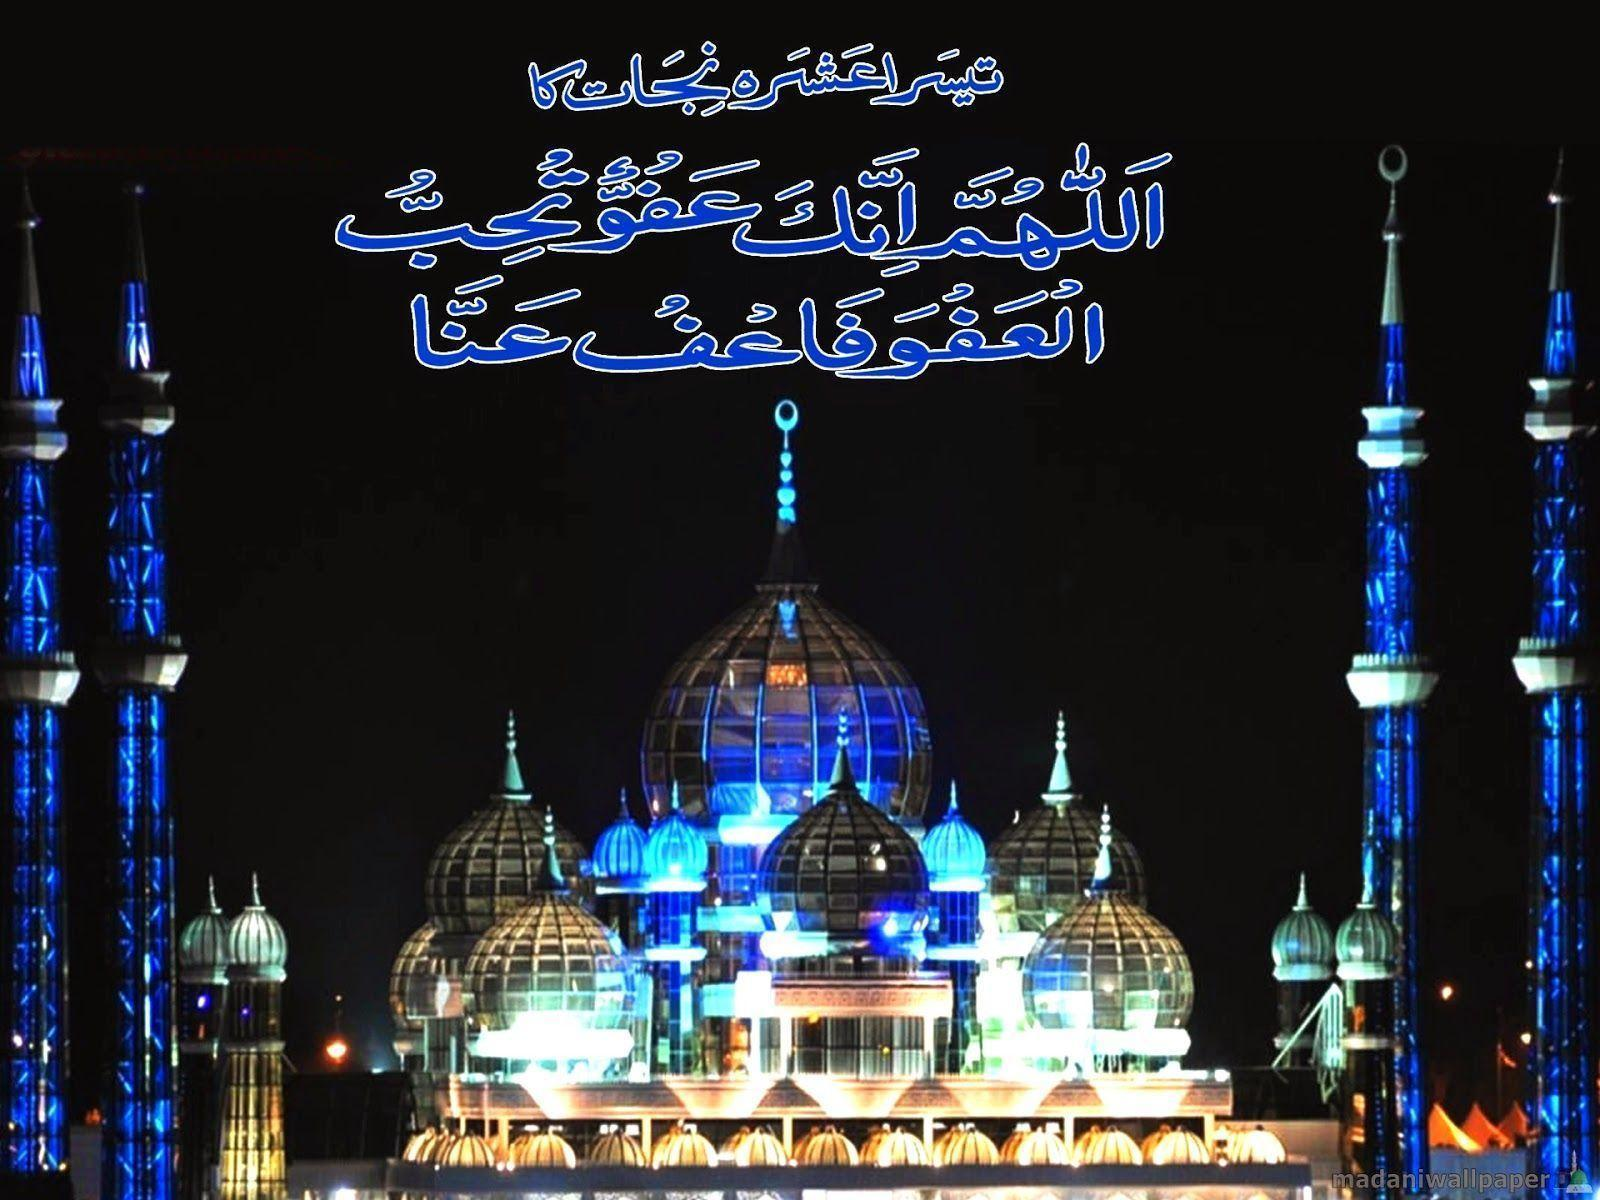 Quran Wallpapers Images Cool Collections of Quran Wallpapers Images For Desktop Laptop and Mobiles Weve gathered more than 3 Million Images uploaded by our users and sorted them by the most popular ones